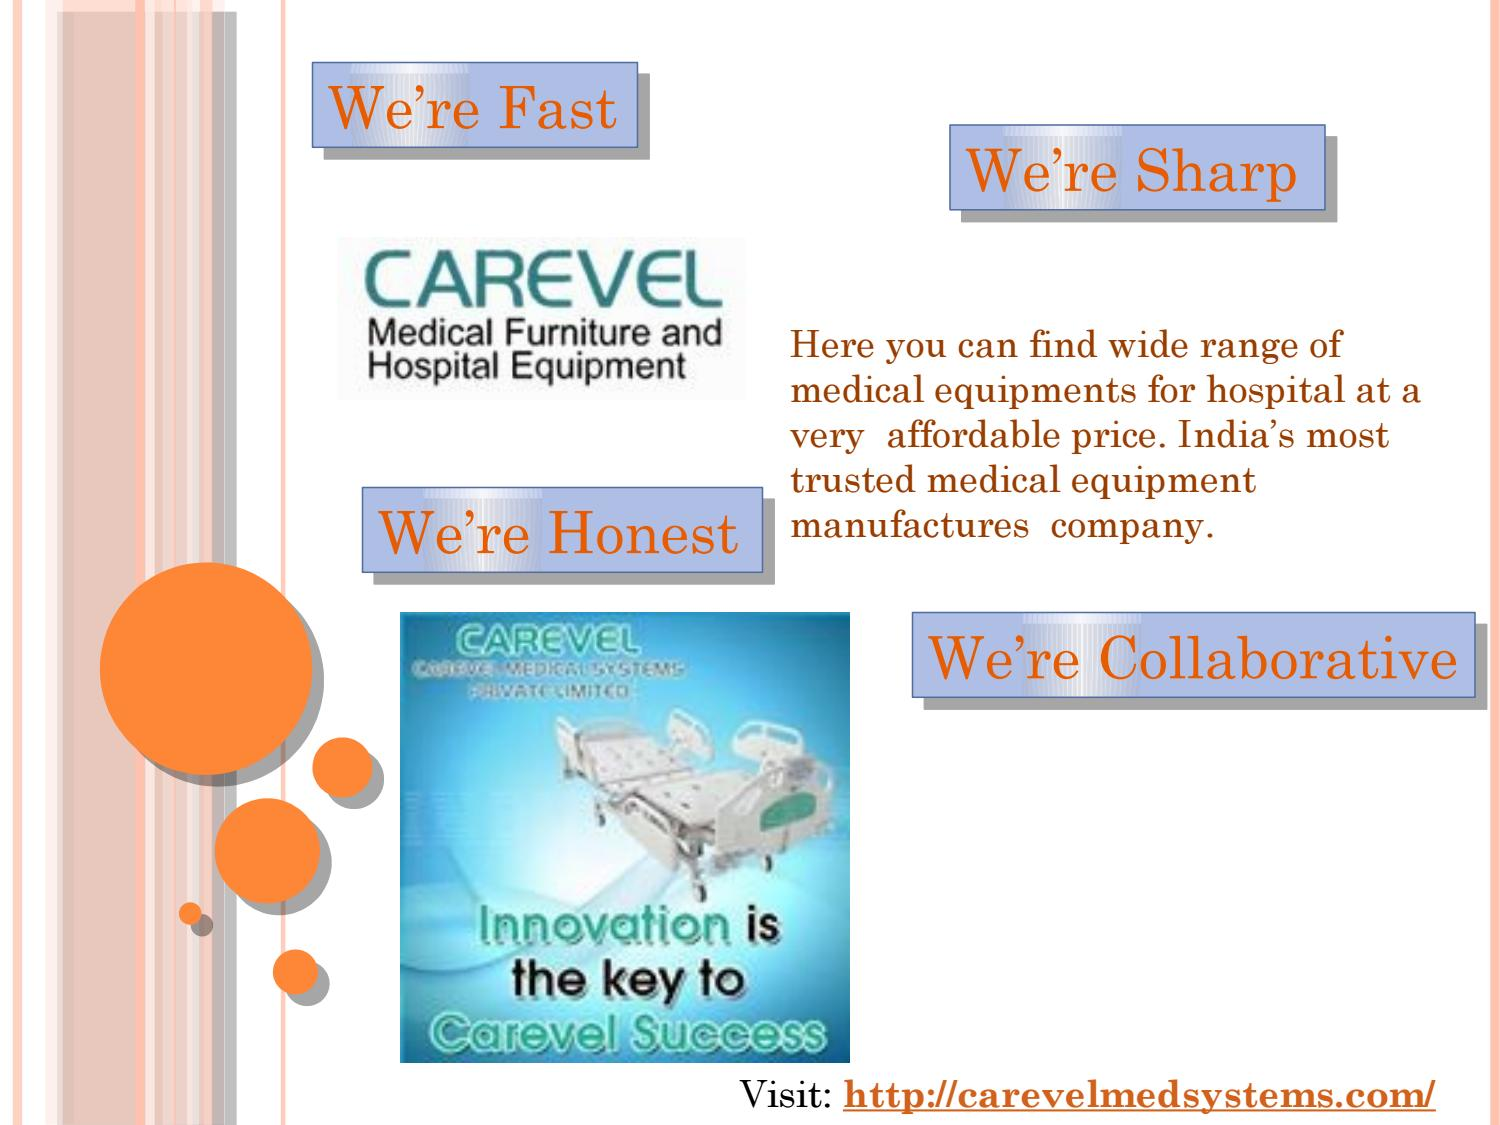 Medical equipment manufacturers by Carevel Medical Systems